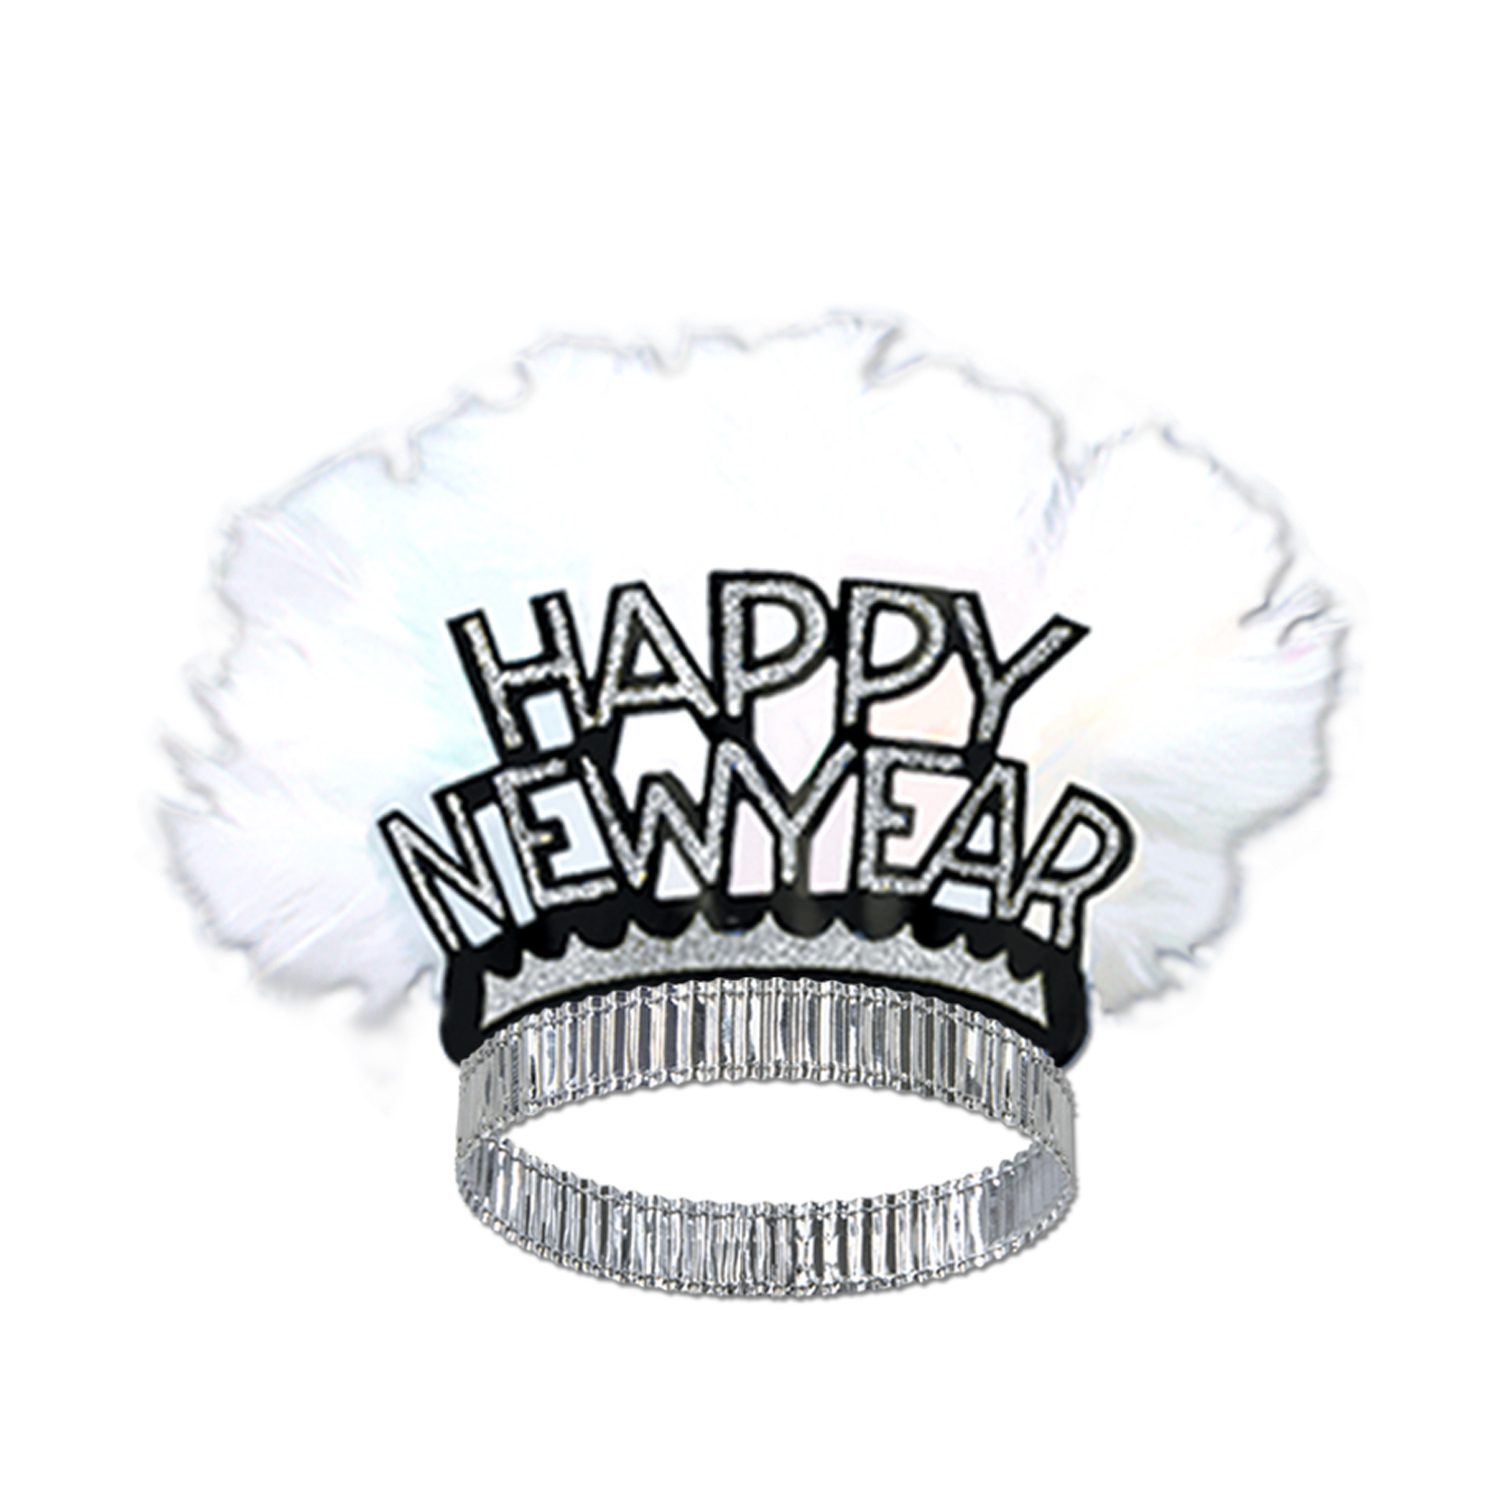 Happy New Year Bird Of Paradise Tiara (Pack of 50) happy, new, year, bird, paradise, tiara, party, eve, white, black, gold, bar, casino, hotel, restaurant